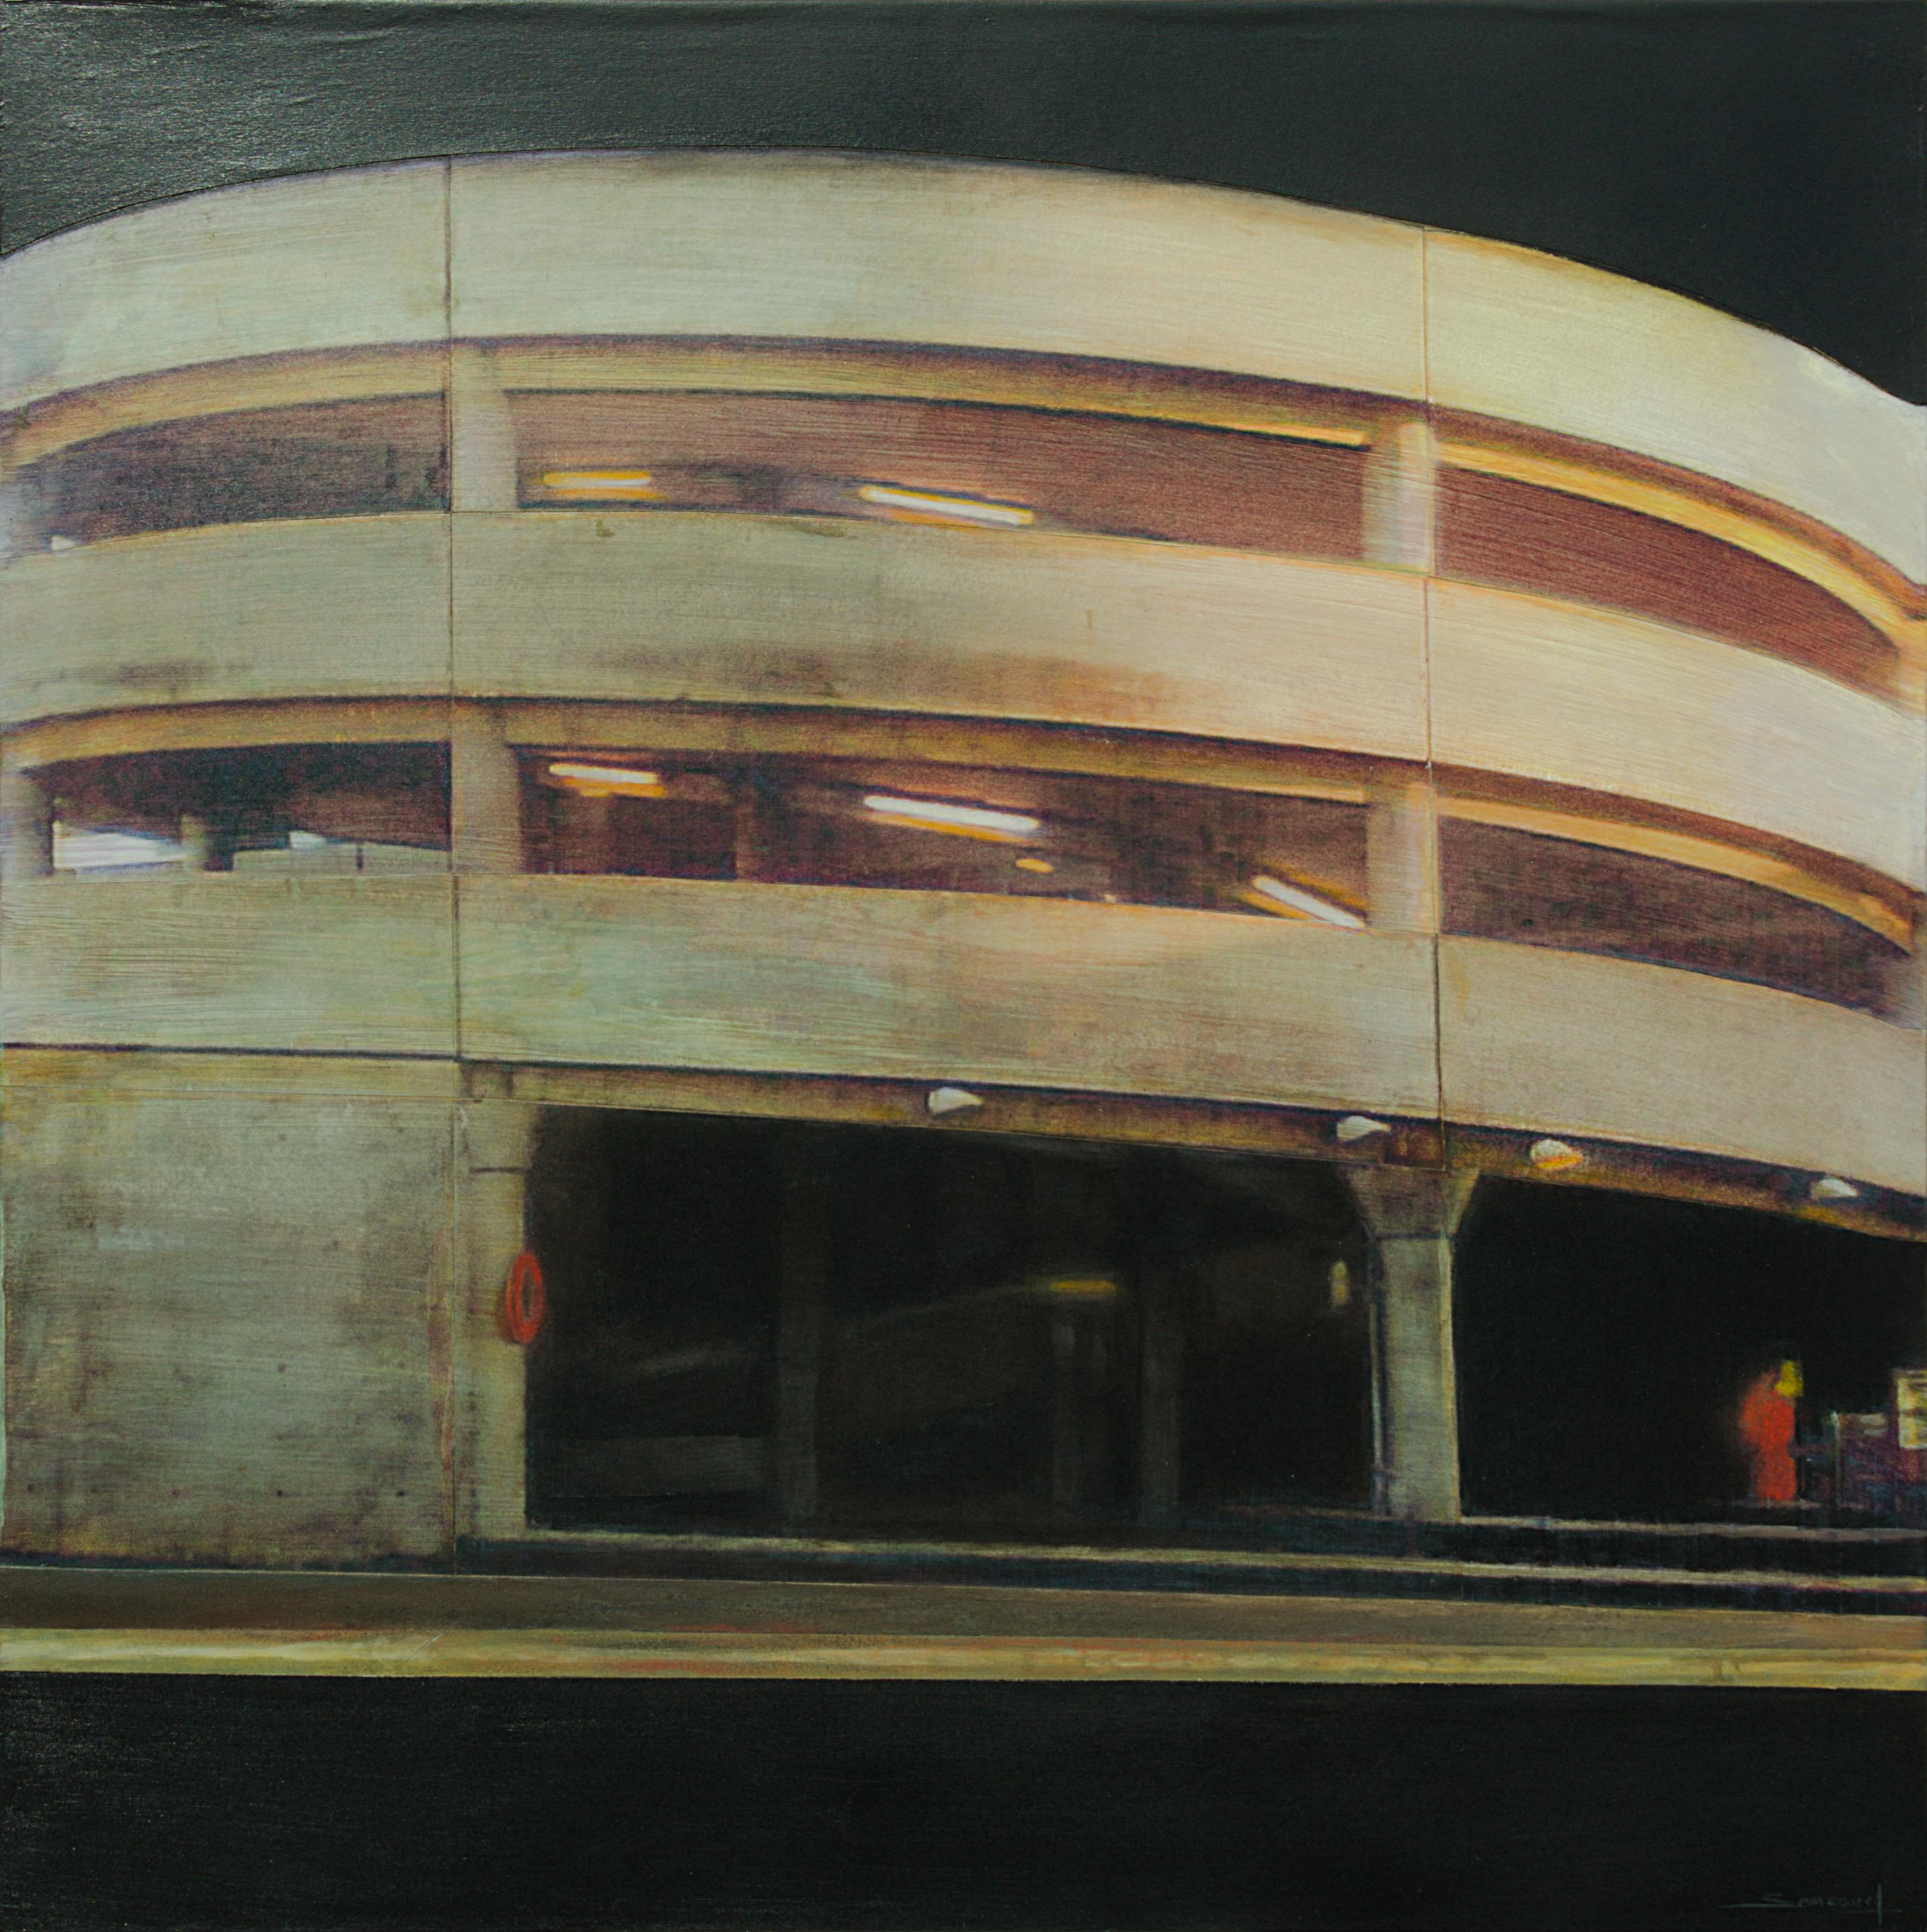 """""""Architecture #3"""" Above-Ground Cylindrical Parking Structure at Night with Neons"""